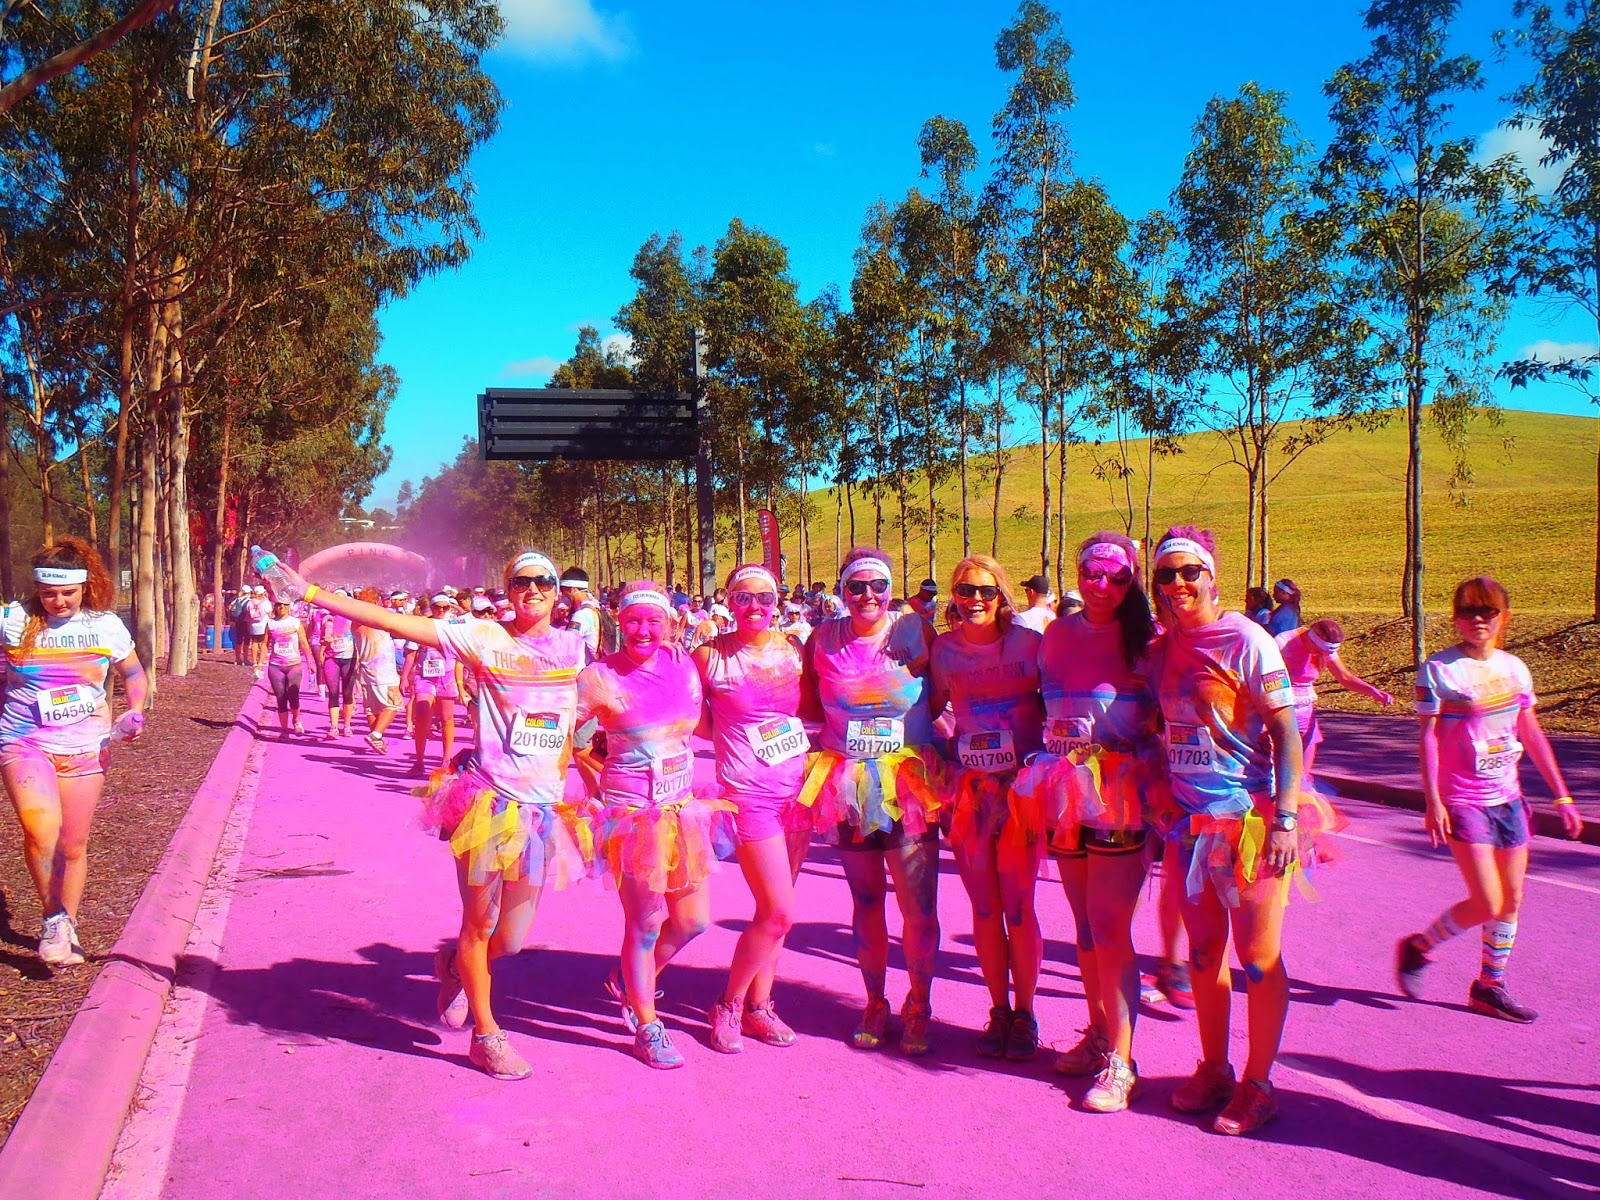 the girls in the pink area